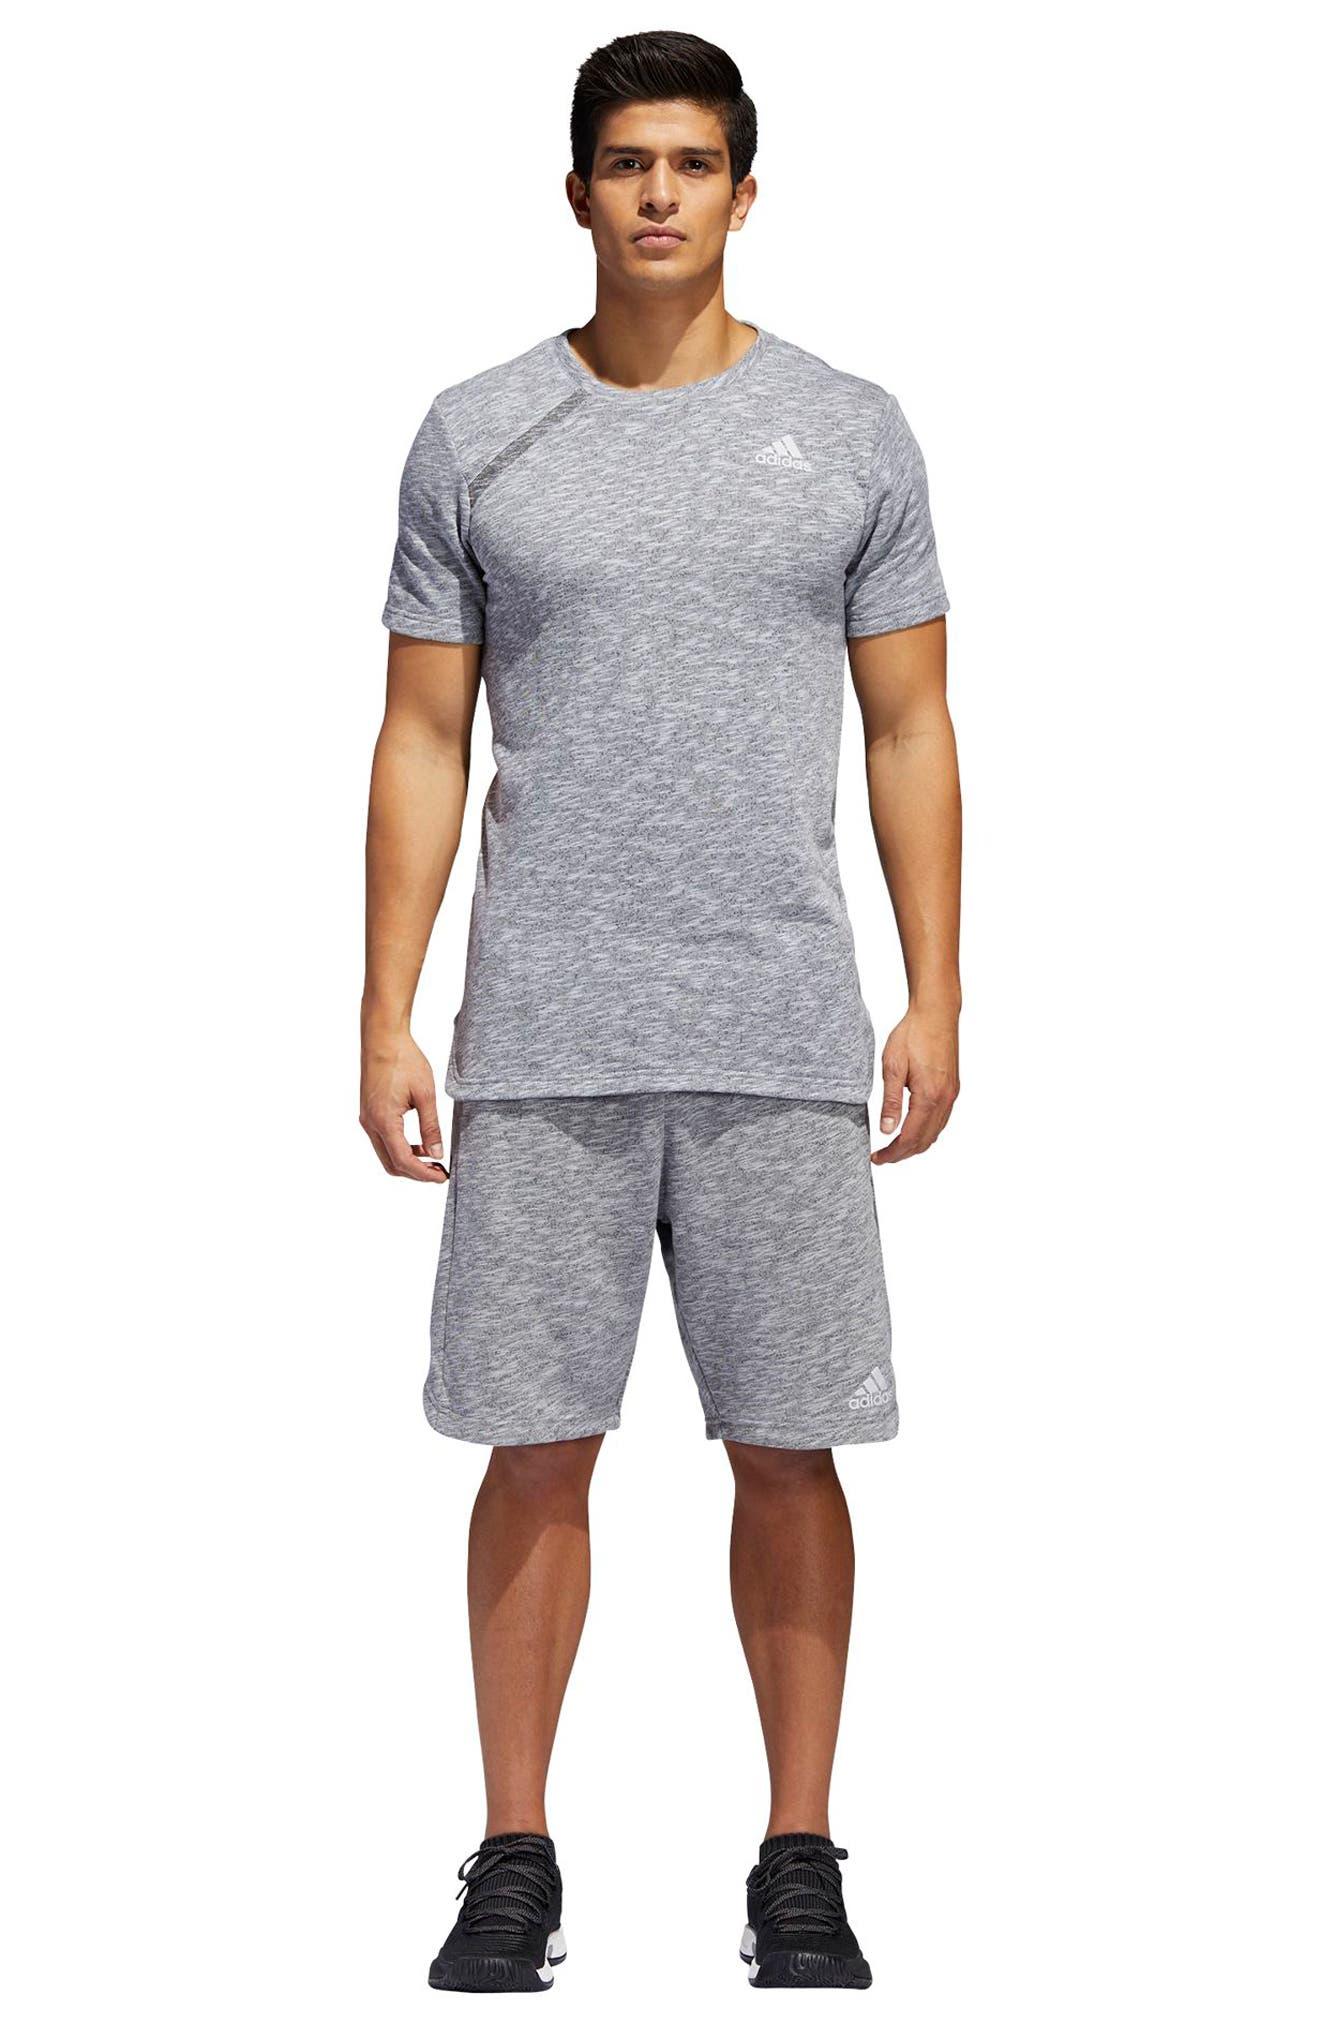 Pick Up Knit Shorts,                             Alternate thumbnail 8, color,                             LGH SOLID GREY